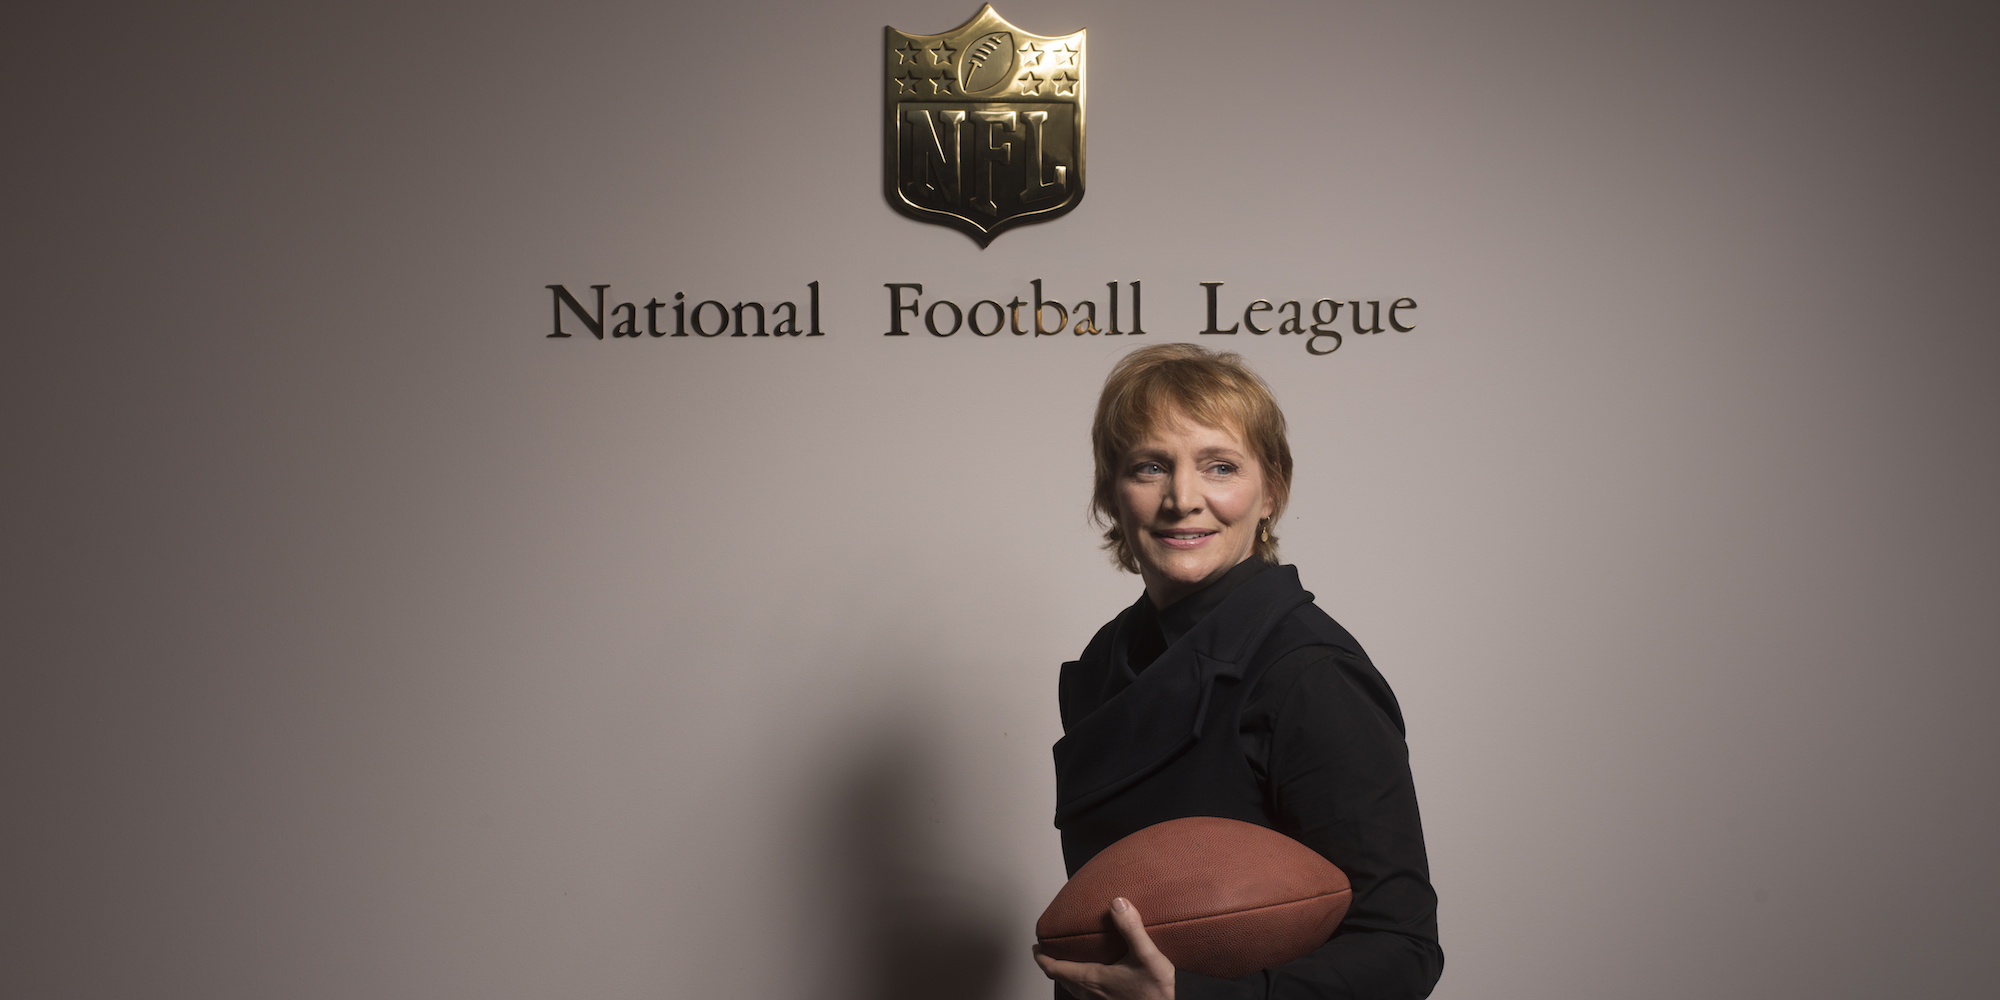 WASHINGTON, DC- OCTOBER 23: Cynthia Hogan has been hired by the National Football League to help the organization with their issues of players abusing women. She is photographed in Washington, D.C. on October 23, 2014. Hogan formerly worked with Vice President Joe Biden. (Photo by Marvin Joseph/The Washington Post)